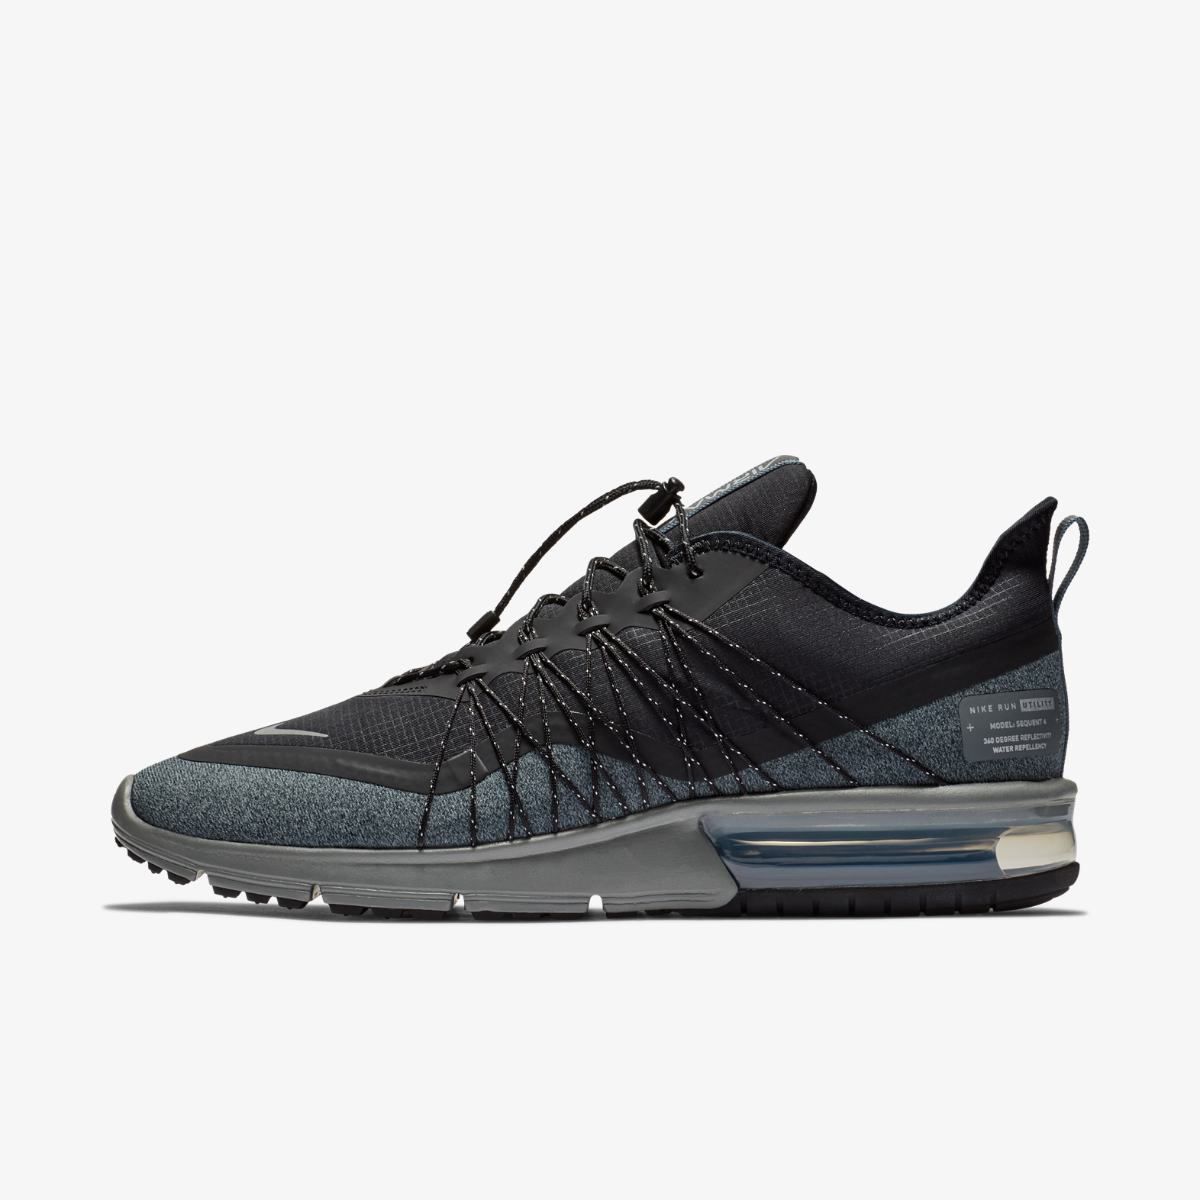 Кроссовки для бега Nike AIR MAX SEQUENT 4 UTILITY